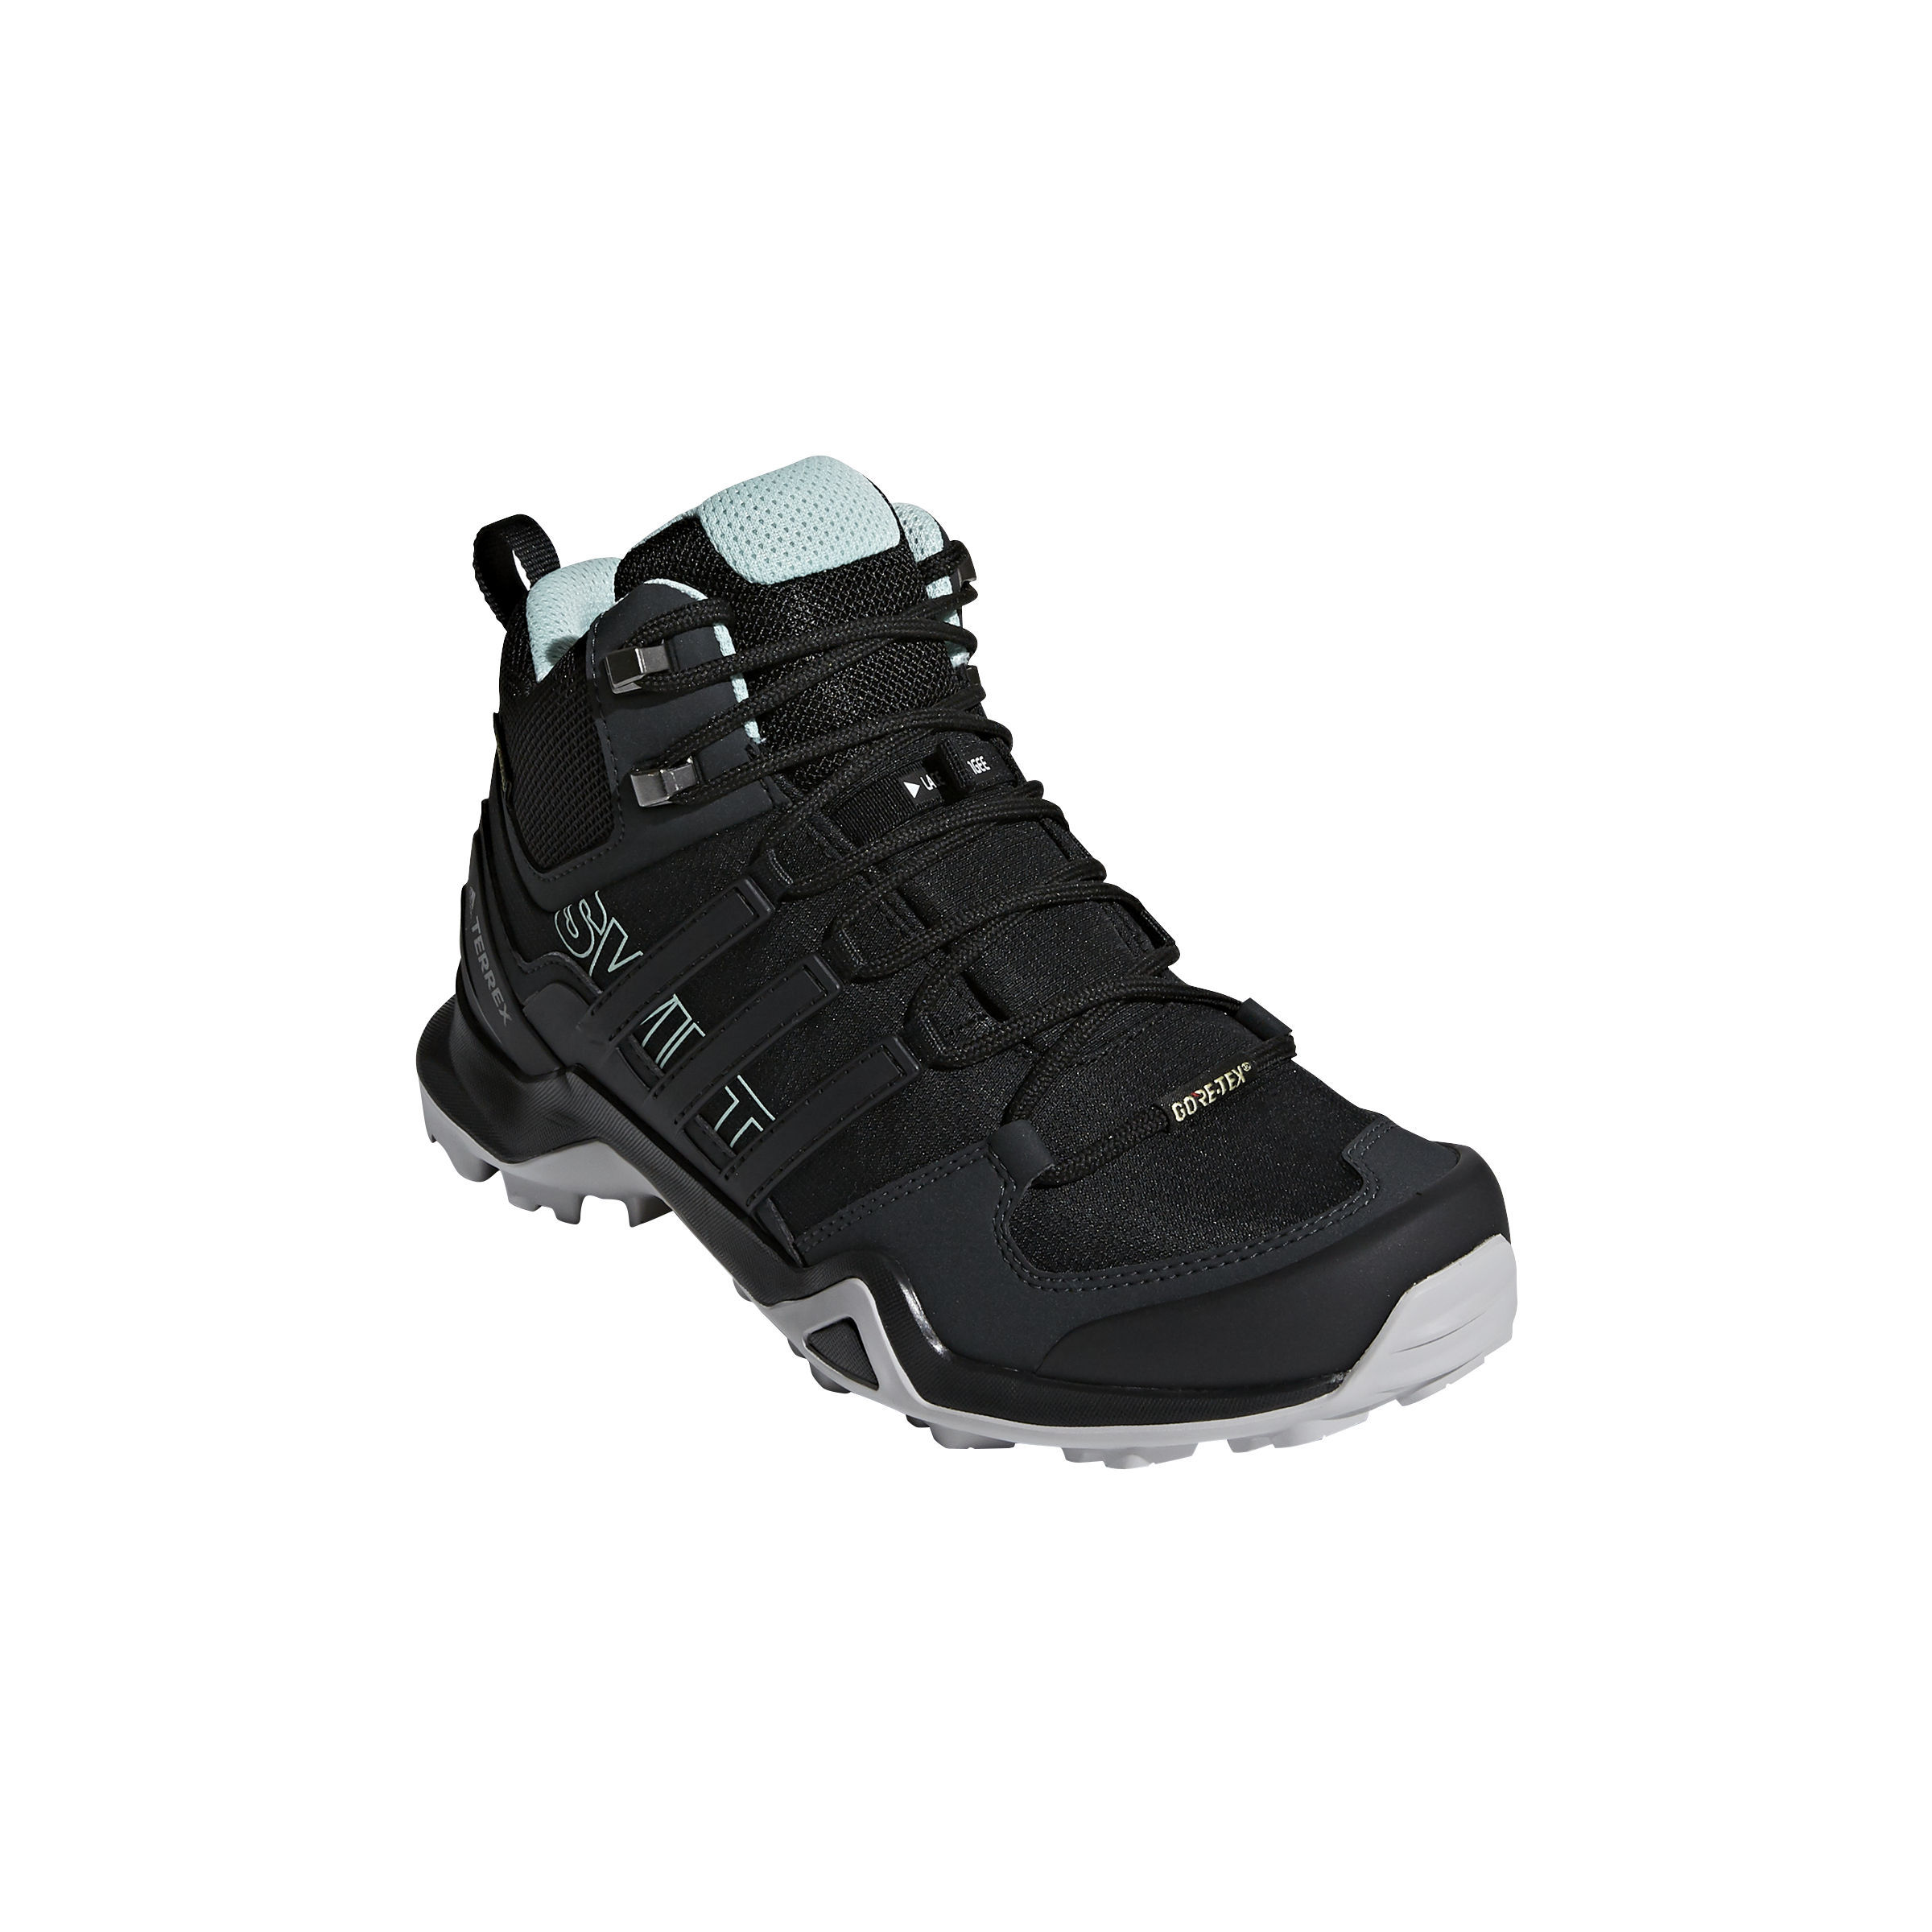 23fd2c1587dac Adidas Outdoor Terrex Swift R2 Mid GTX Hiking Shoes - Women s with Free S H  — CampSaver